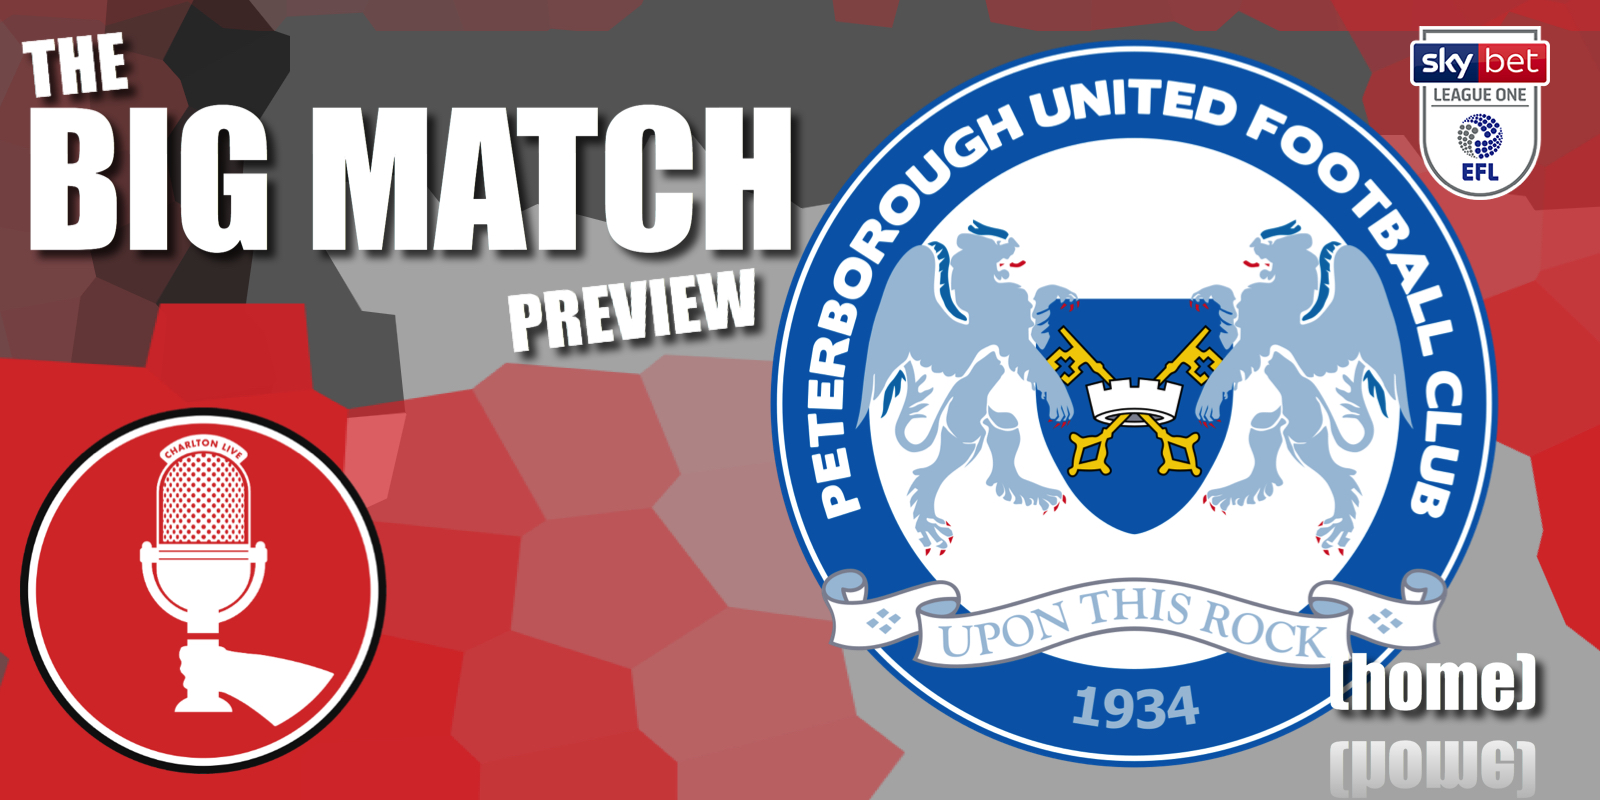 Big Match Preview – Peterborough United at home 2020-21